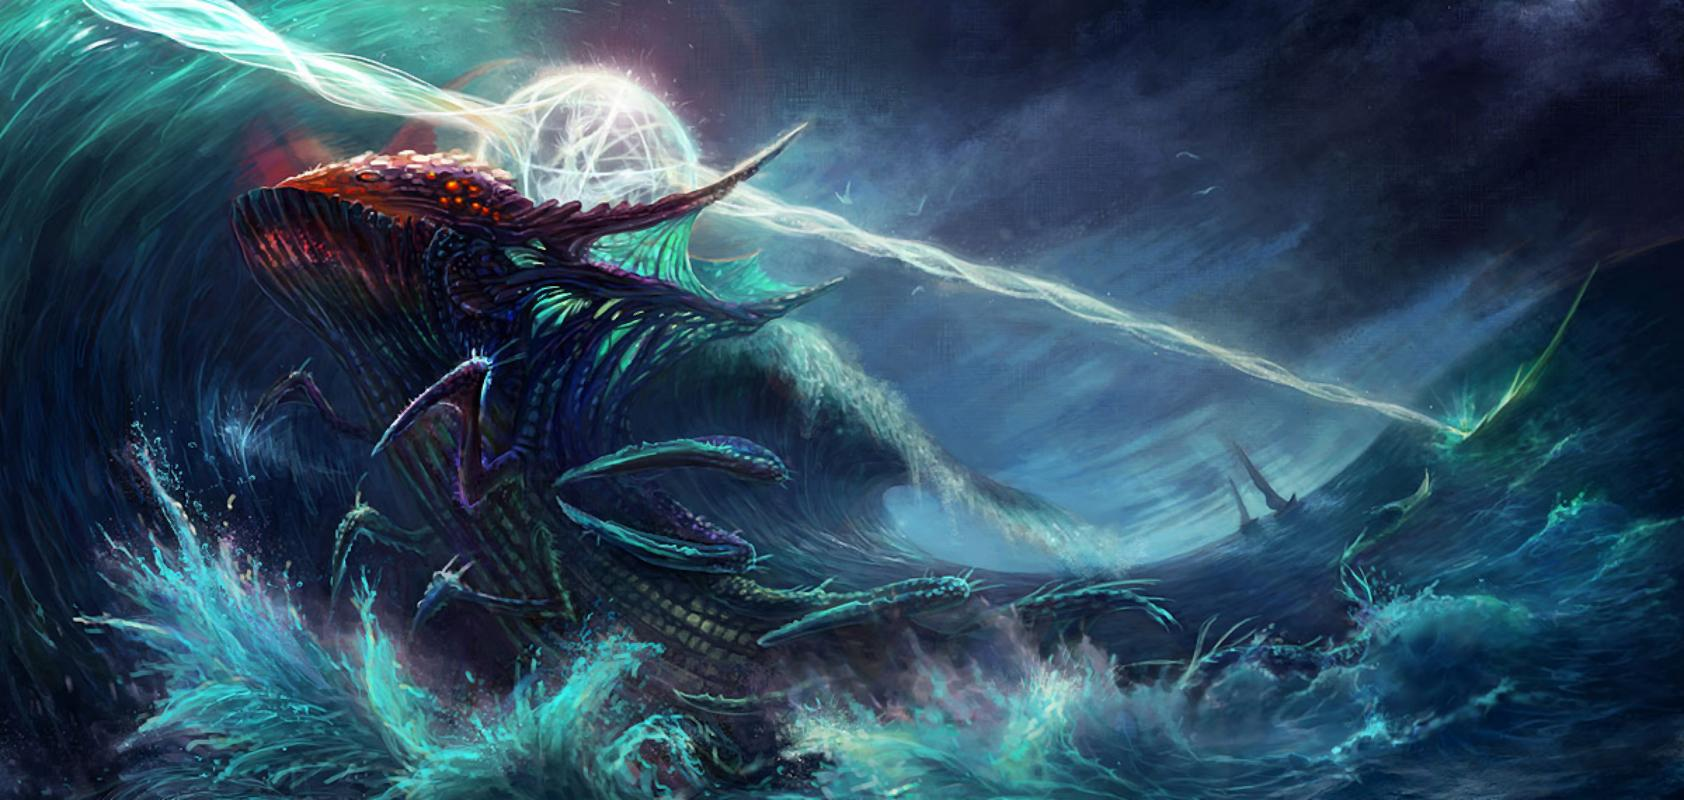 Sea Monster wallpapers HD quality